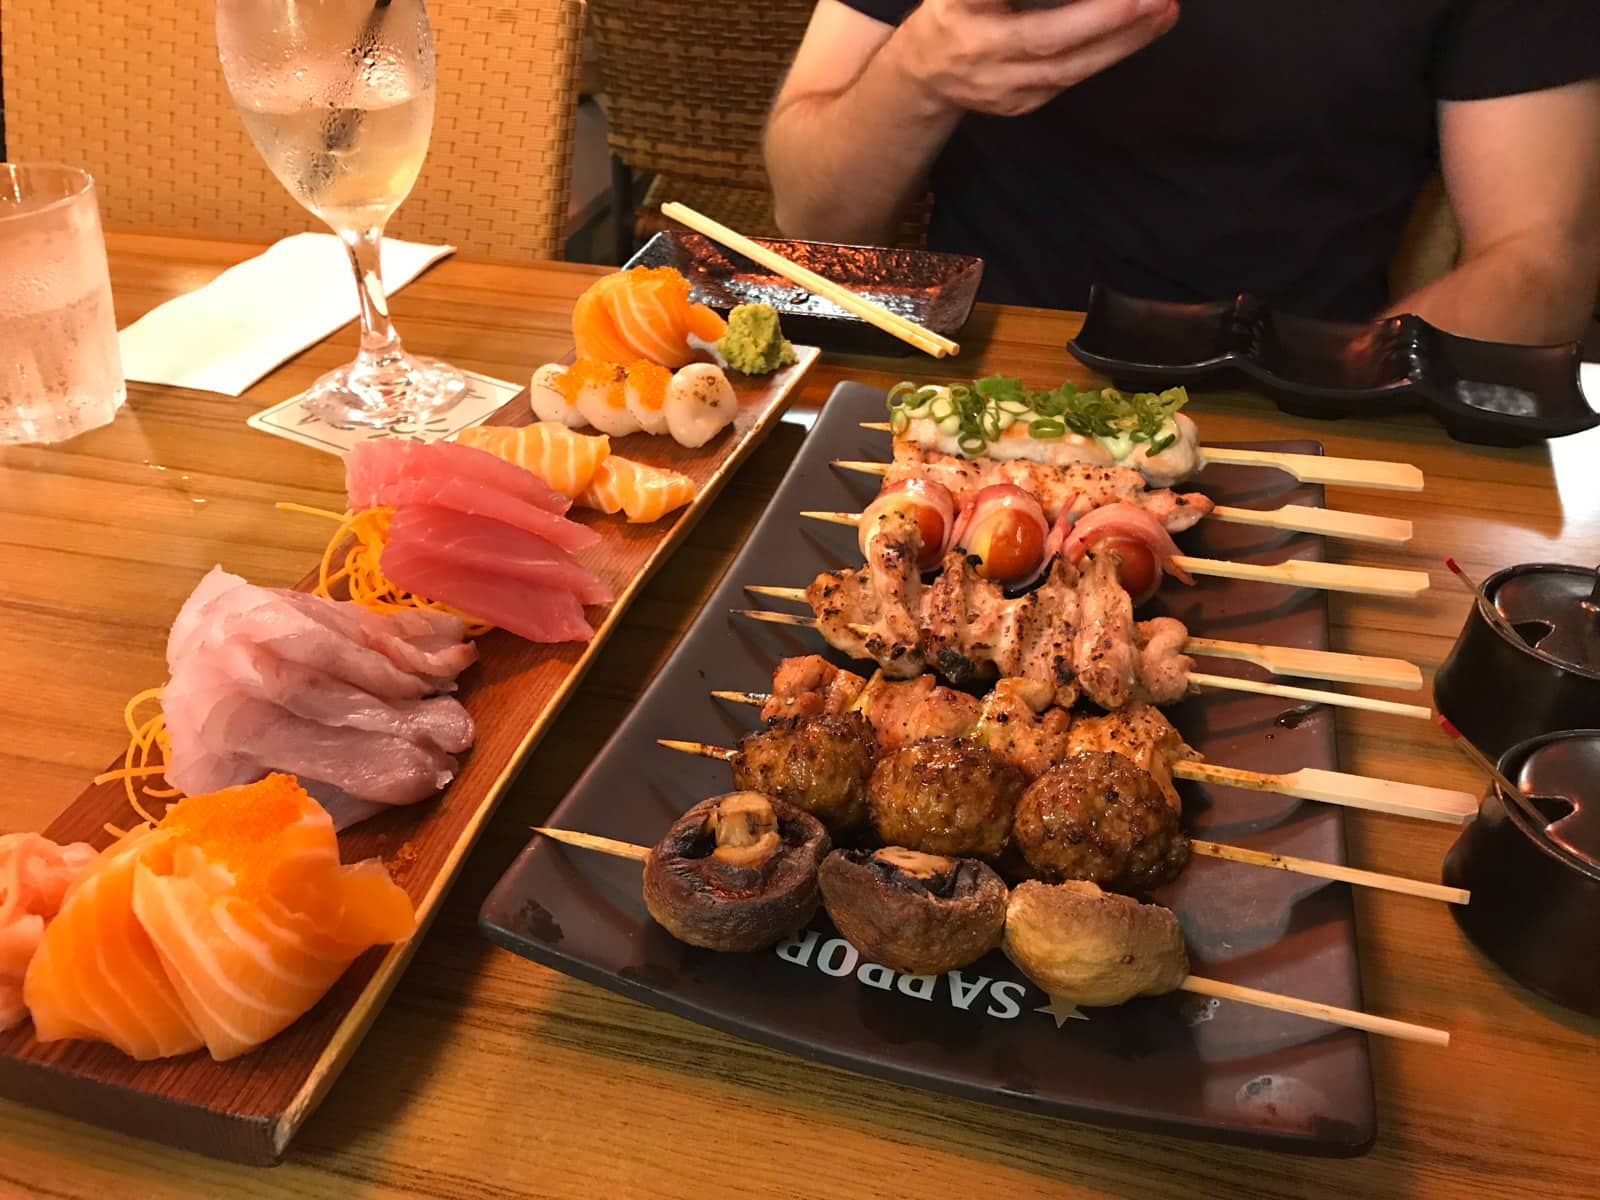 A restaurant table with a plate of small skewers of meat, and sliced raw fish on a separate plate